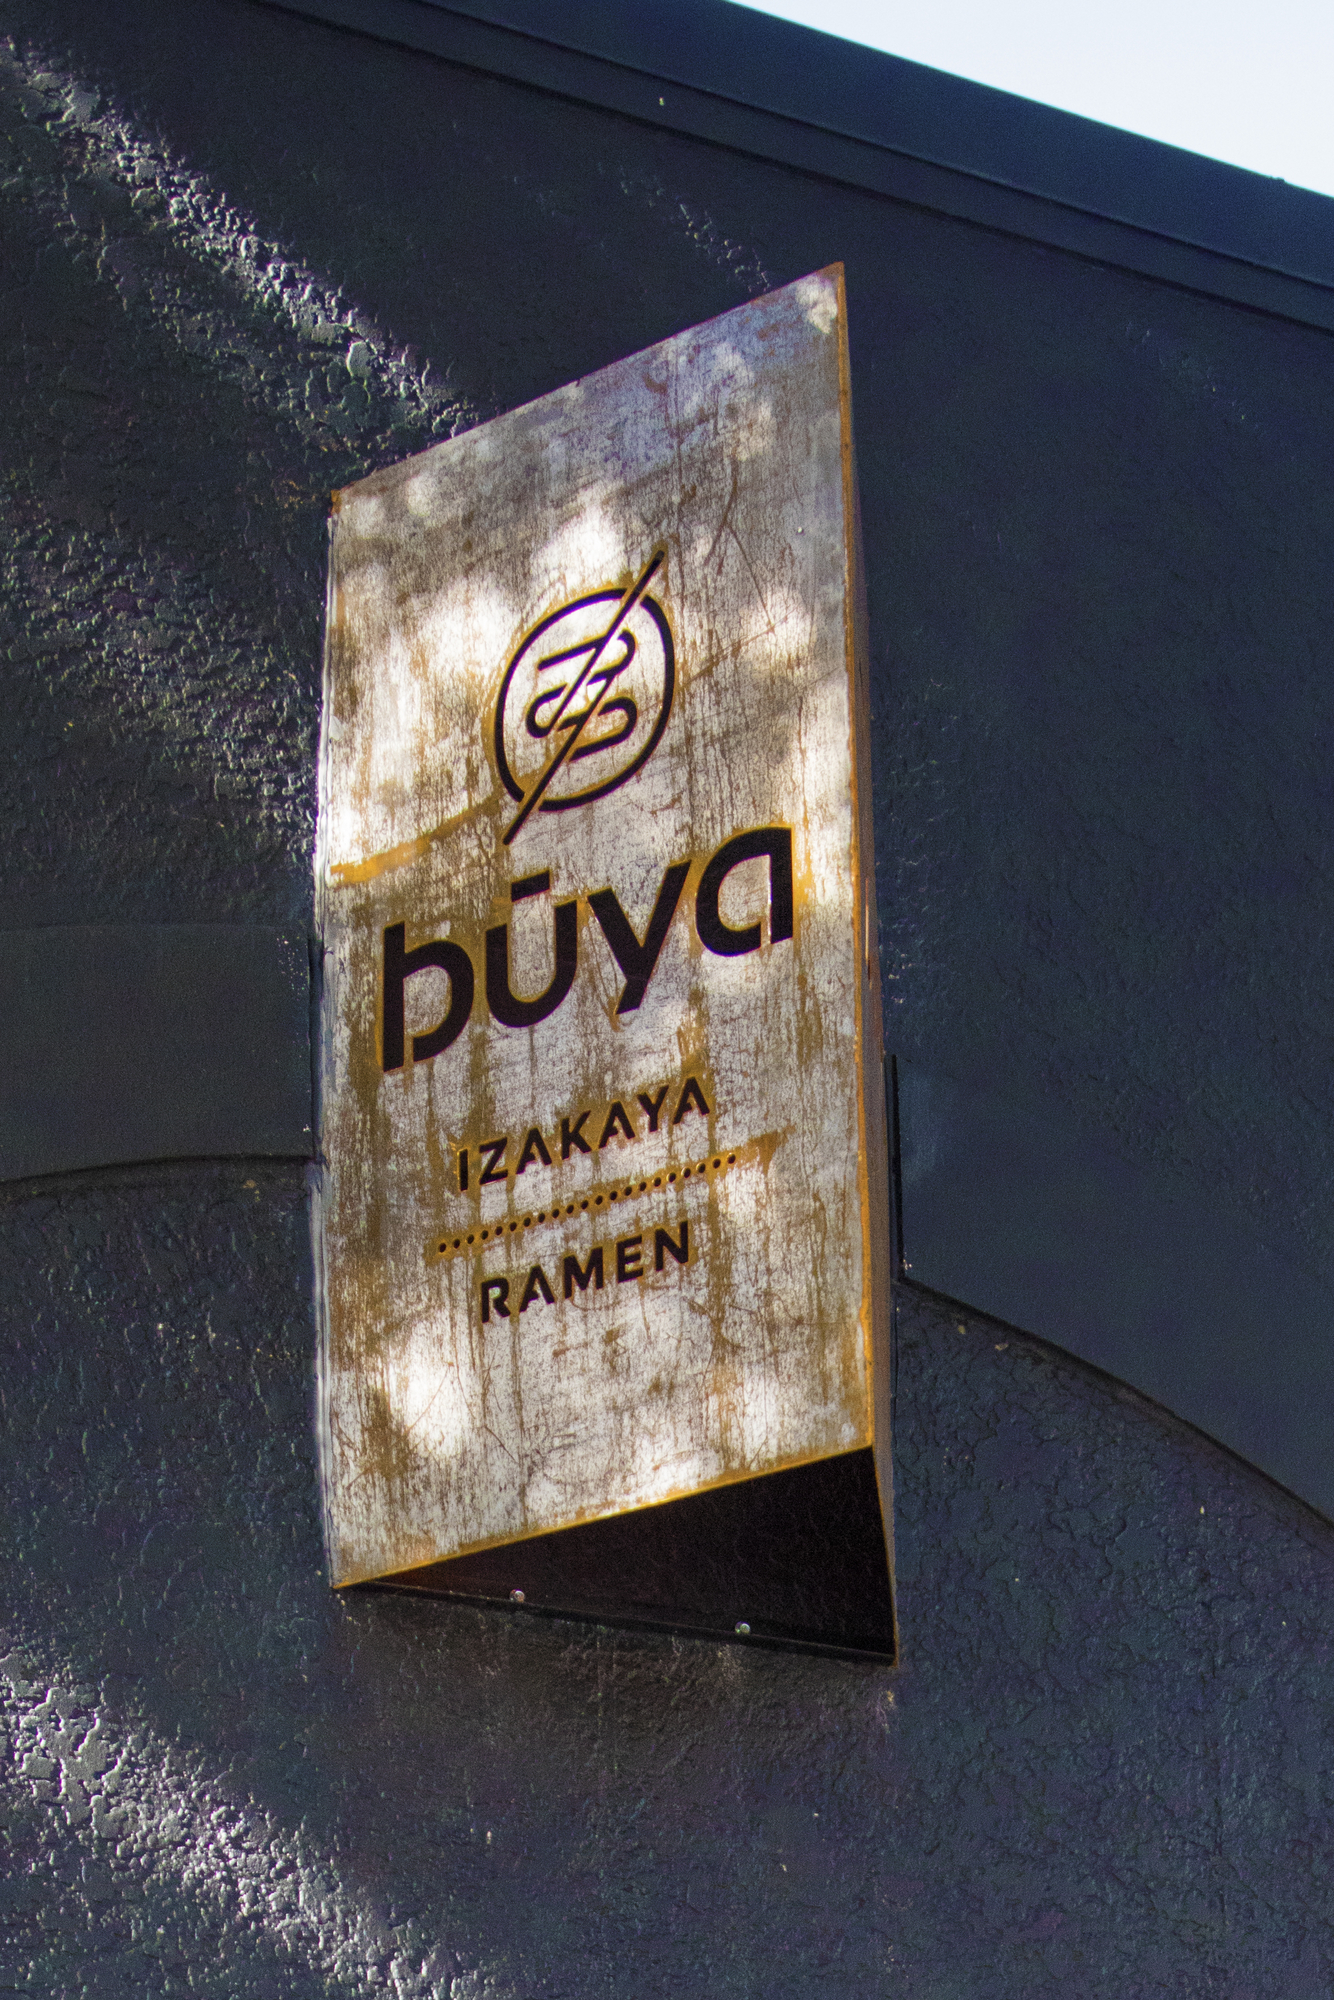 Buya Ramen, 911 Central Ave St. Petersburg, FL 33705 (727) 202-7010